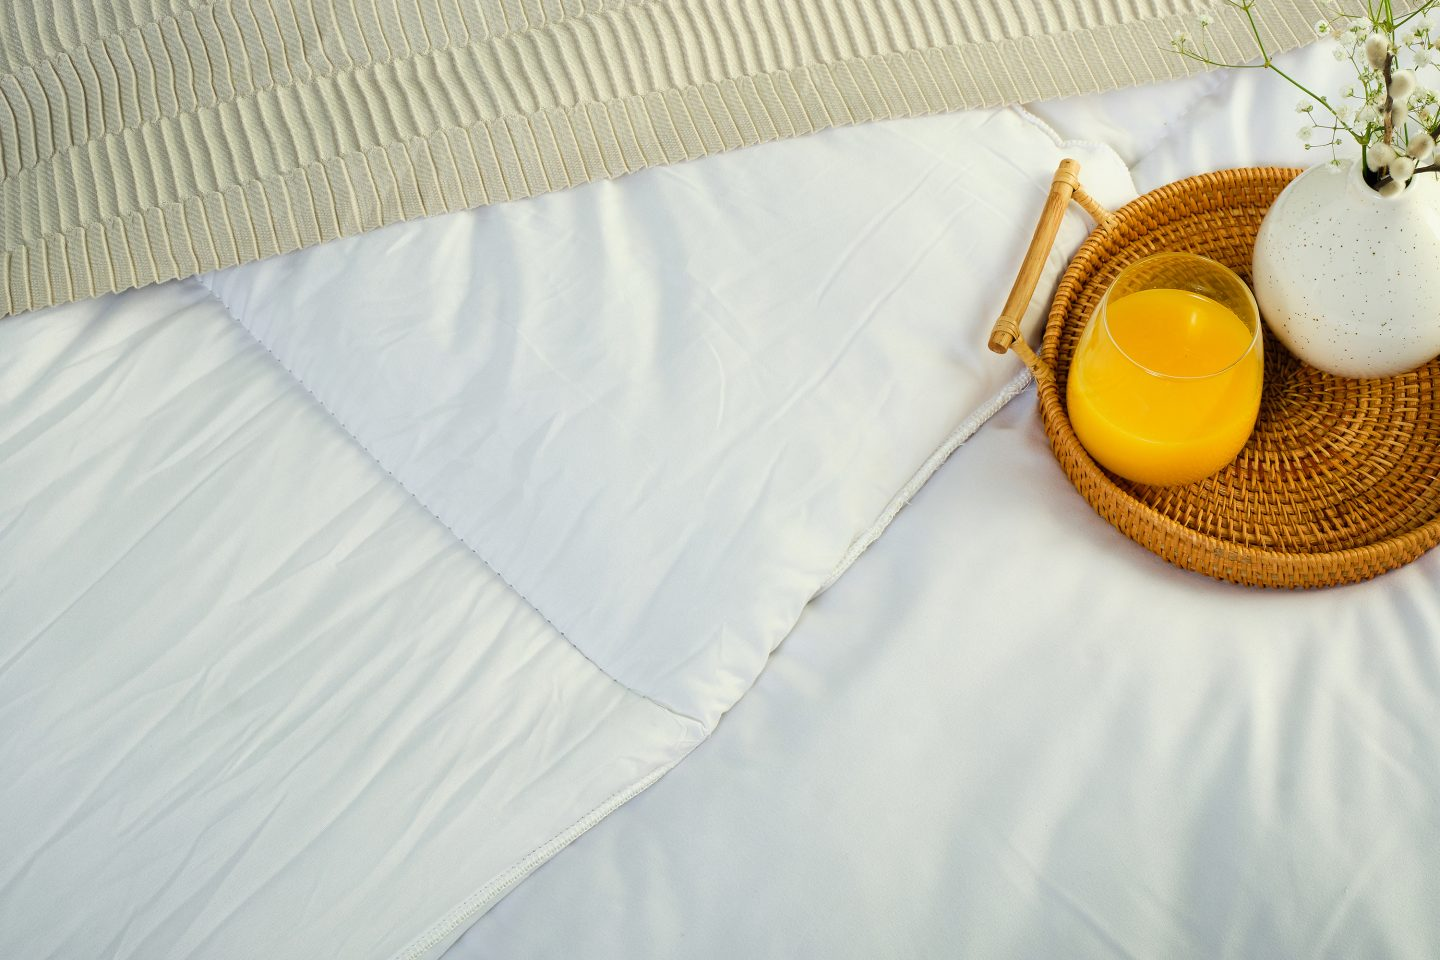 Tray holding an orange juice sat on a duvet